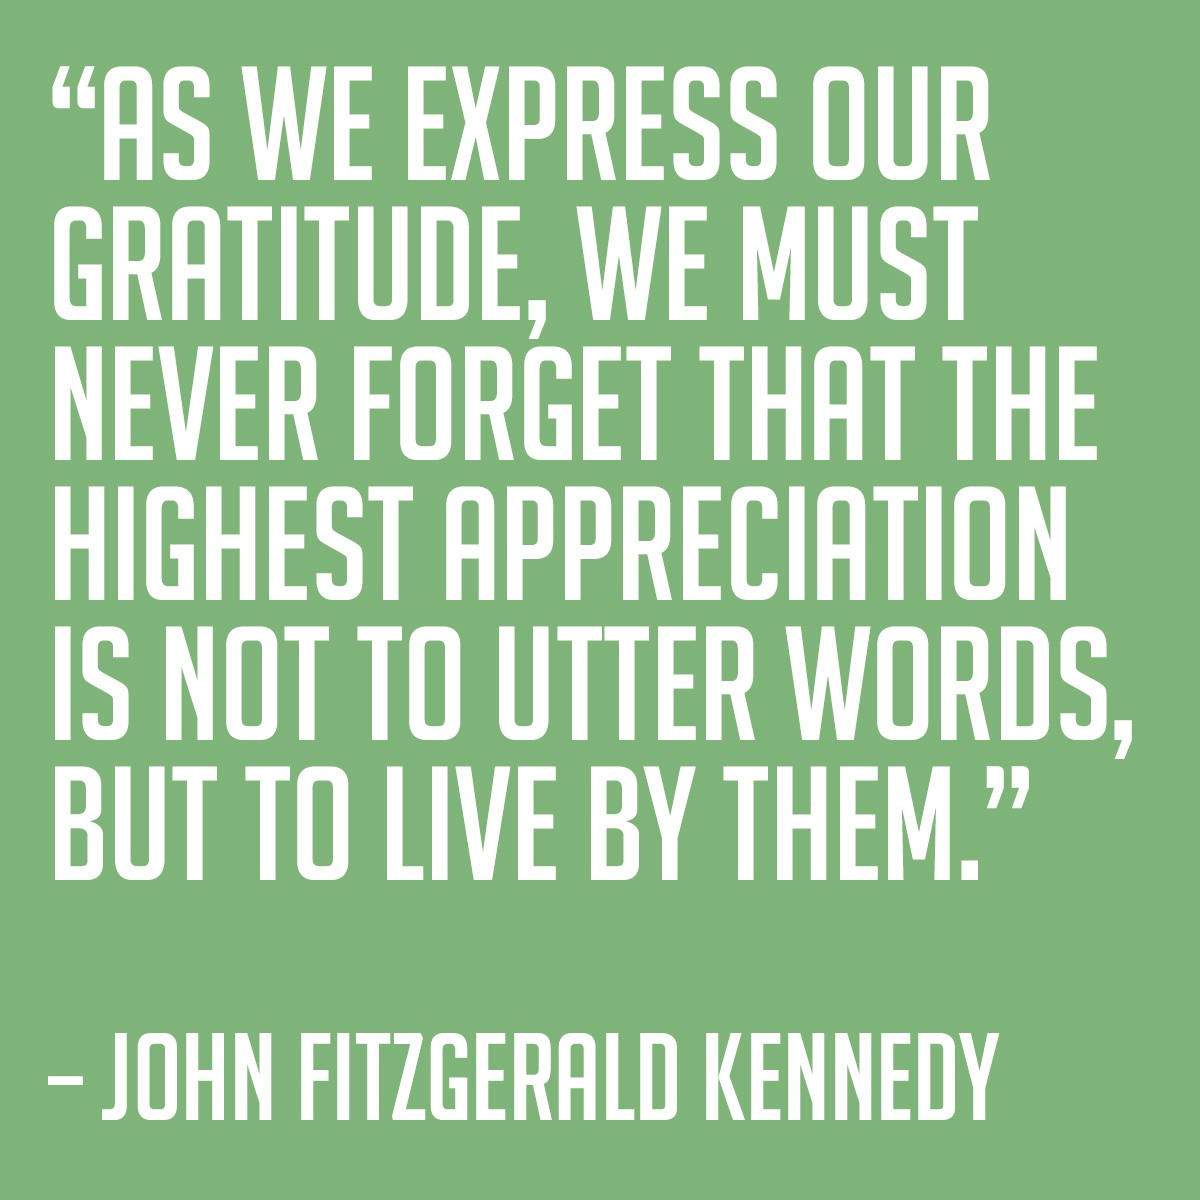 As we express our gratitude, we must never forget that the highest appreciation is not to utter words, but to live by them. - John Fitzgerald Kennedy | Thanksgiving.com